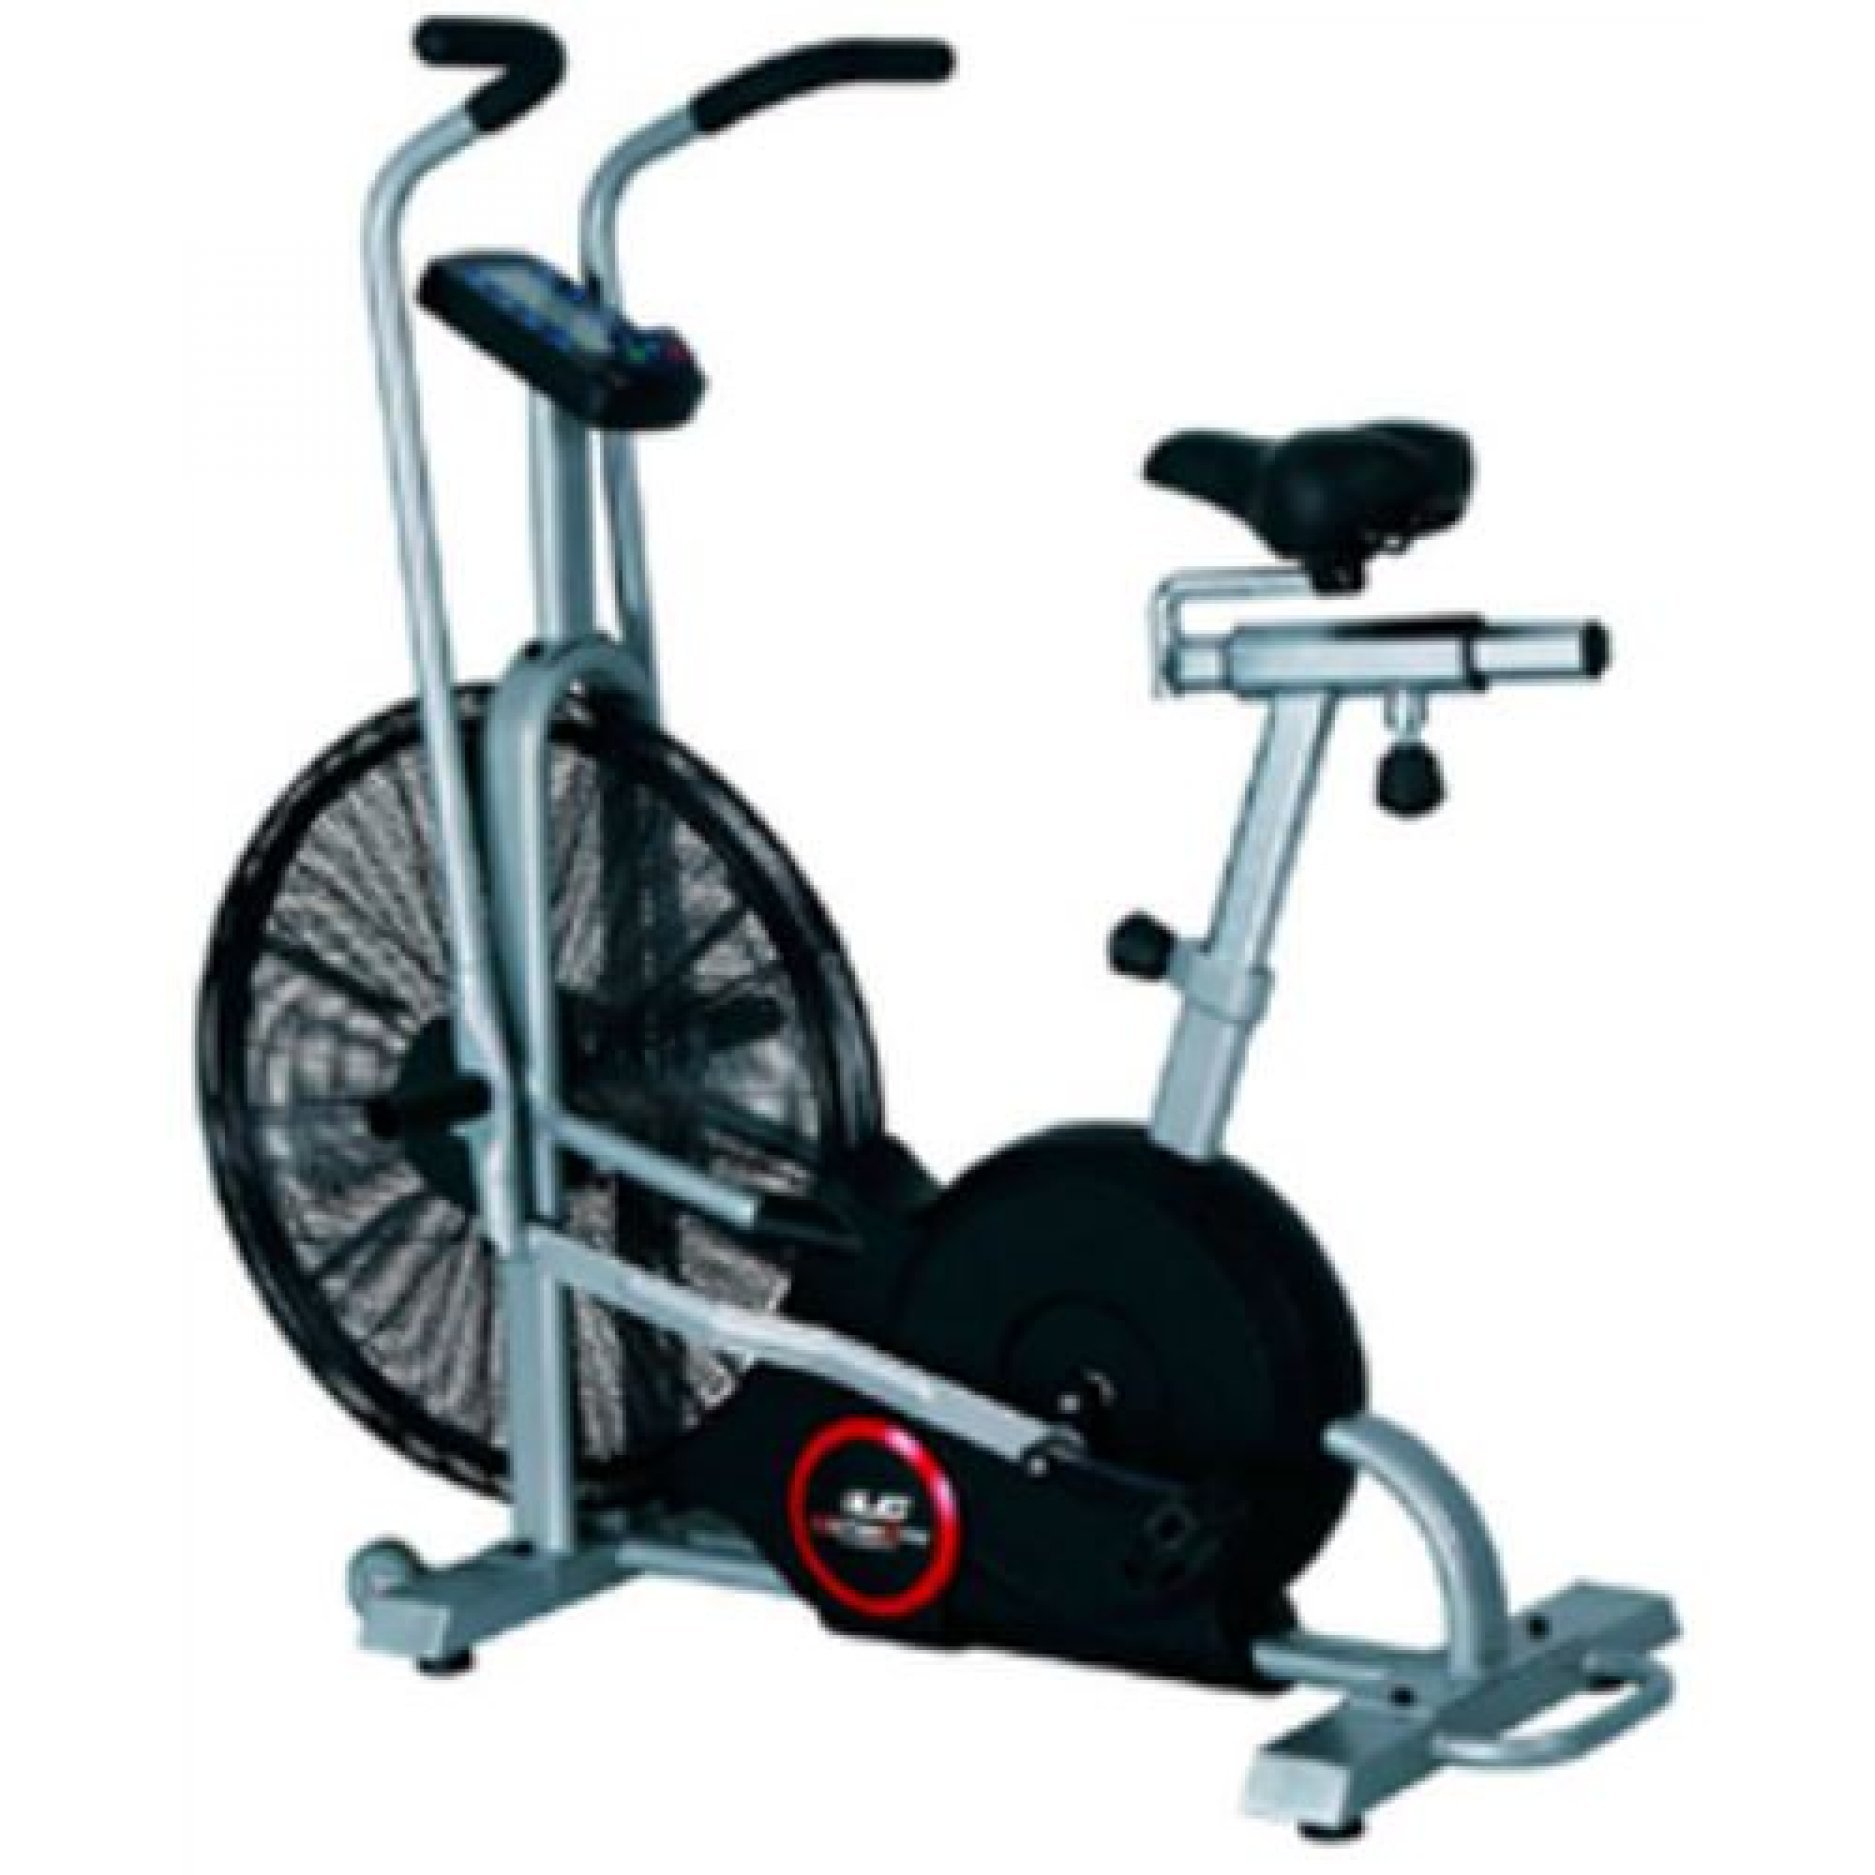 АЭРО велосипед UltraGym Air bike UG-AB001